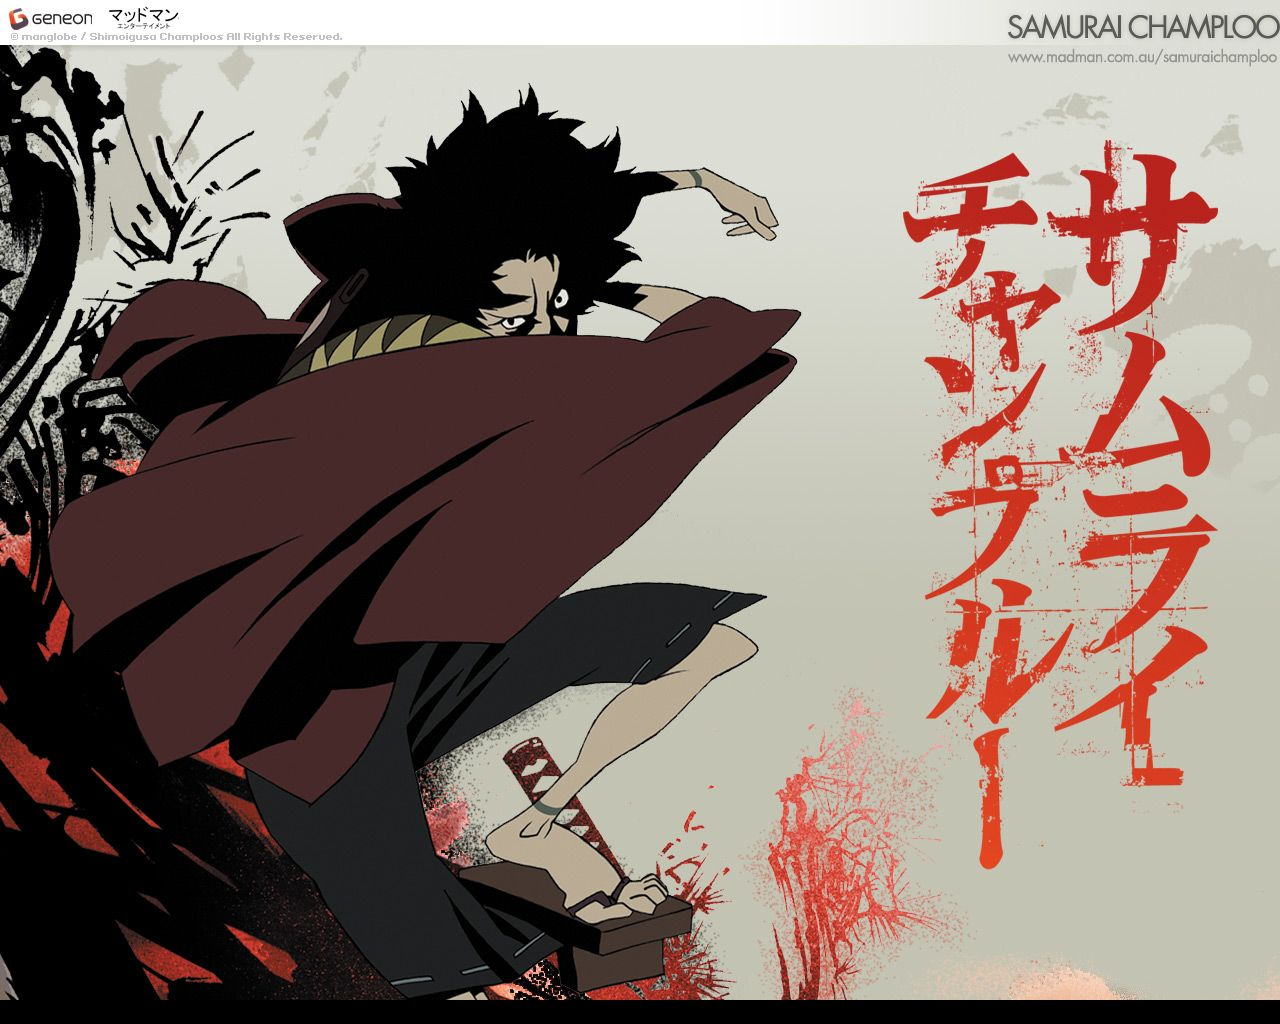 Samurai Champloo Samurai Champloo Samurai Anime Canvas Art